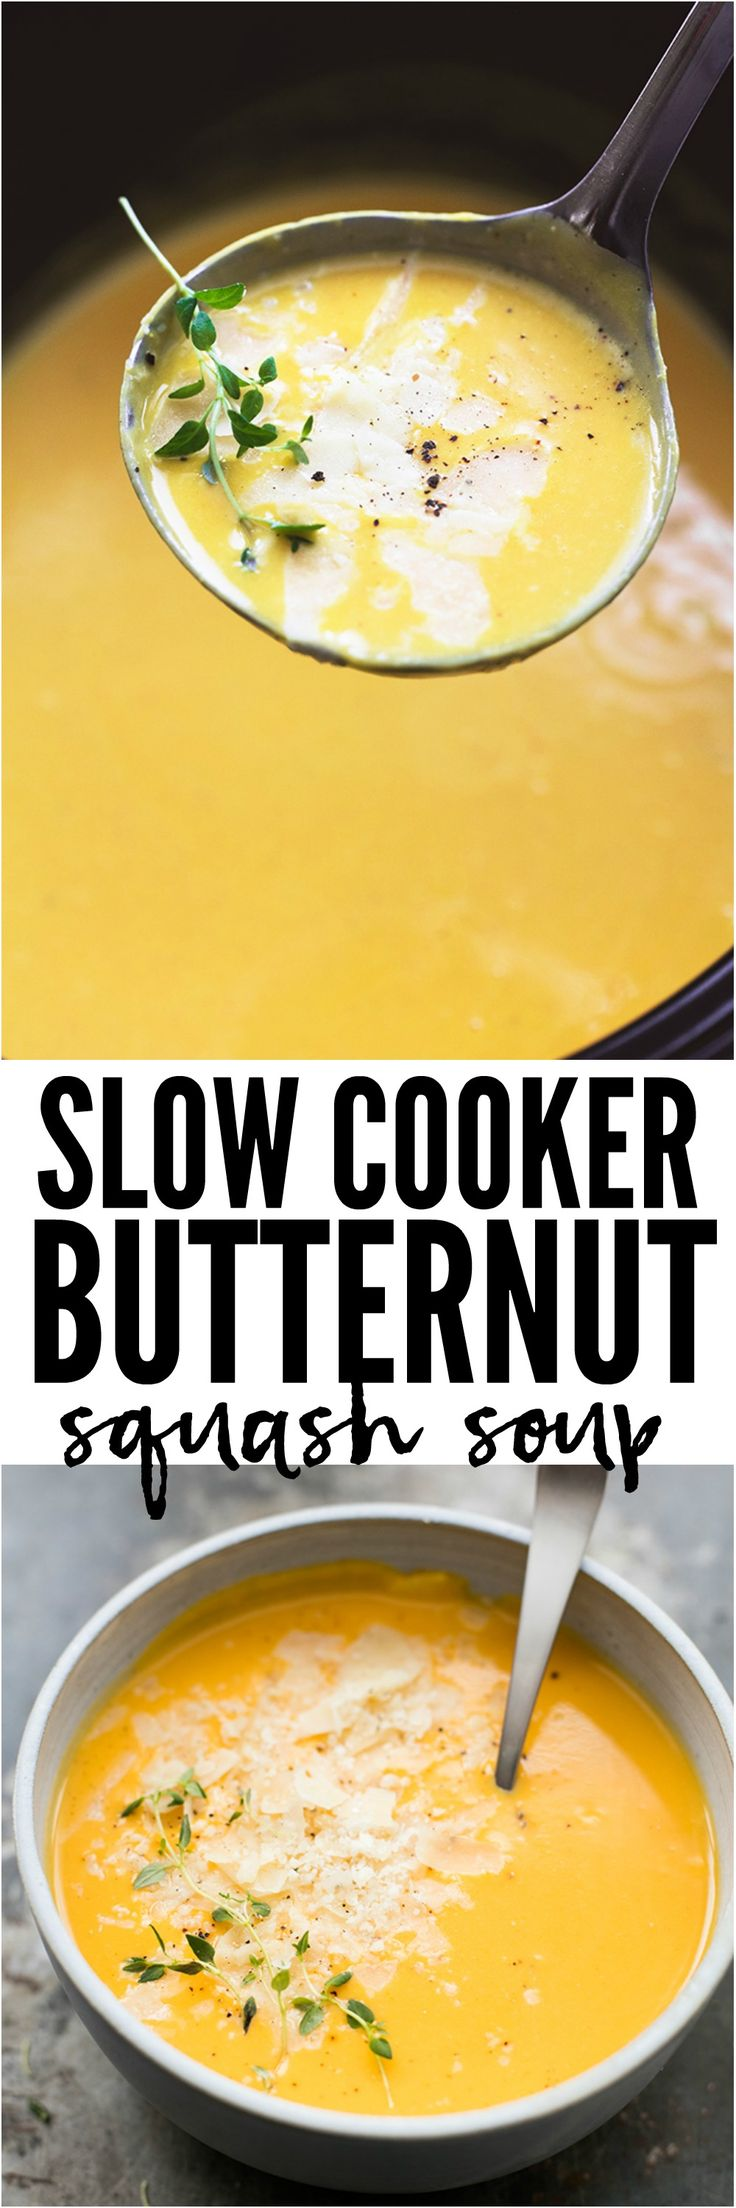 Slow Cooker Butternut Squash Soup is creamy, cheesy, and the perfect comforting soup. This soup will become a new favorite!